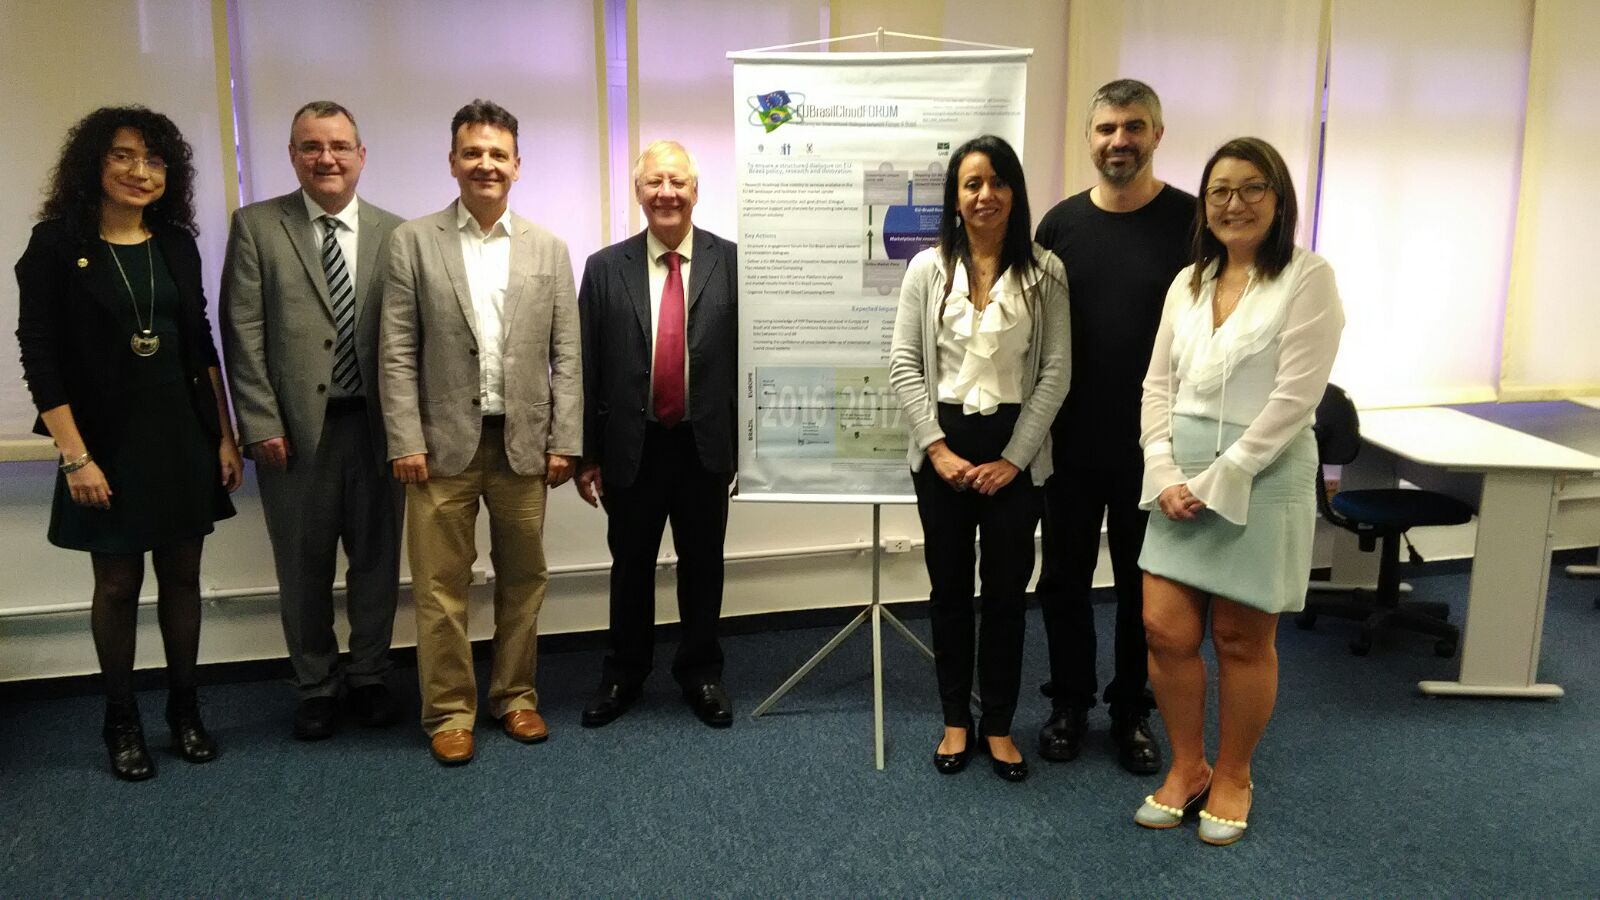 EUBrasilCloudFORUM project team (left to right): Rita Meneses, Trust-IT Services, UK and Italy; James Clarke, Waterford Institute of Technology, TSSG, Ireland; Antônio Augusto Fröhlich, The Federal University of Santa Catarina, Brazil; Moacyr Martucci Jr., University of São Paulo, Brazil; Priscila Solis, University of Brasília, Brazil; Marco Vieira, University of Coimbra, Portugal; Cecilia Emi Yamanaka, University of São Paulo, Brazil.